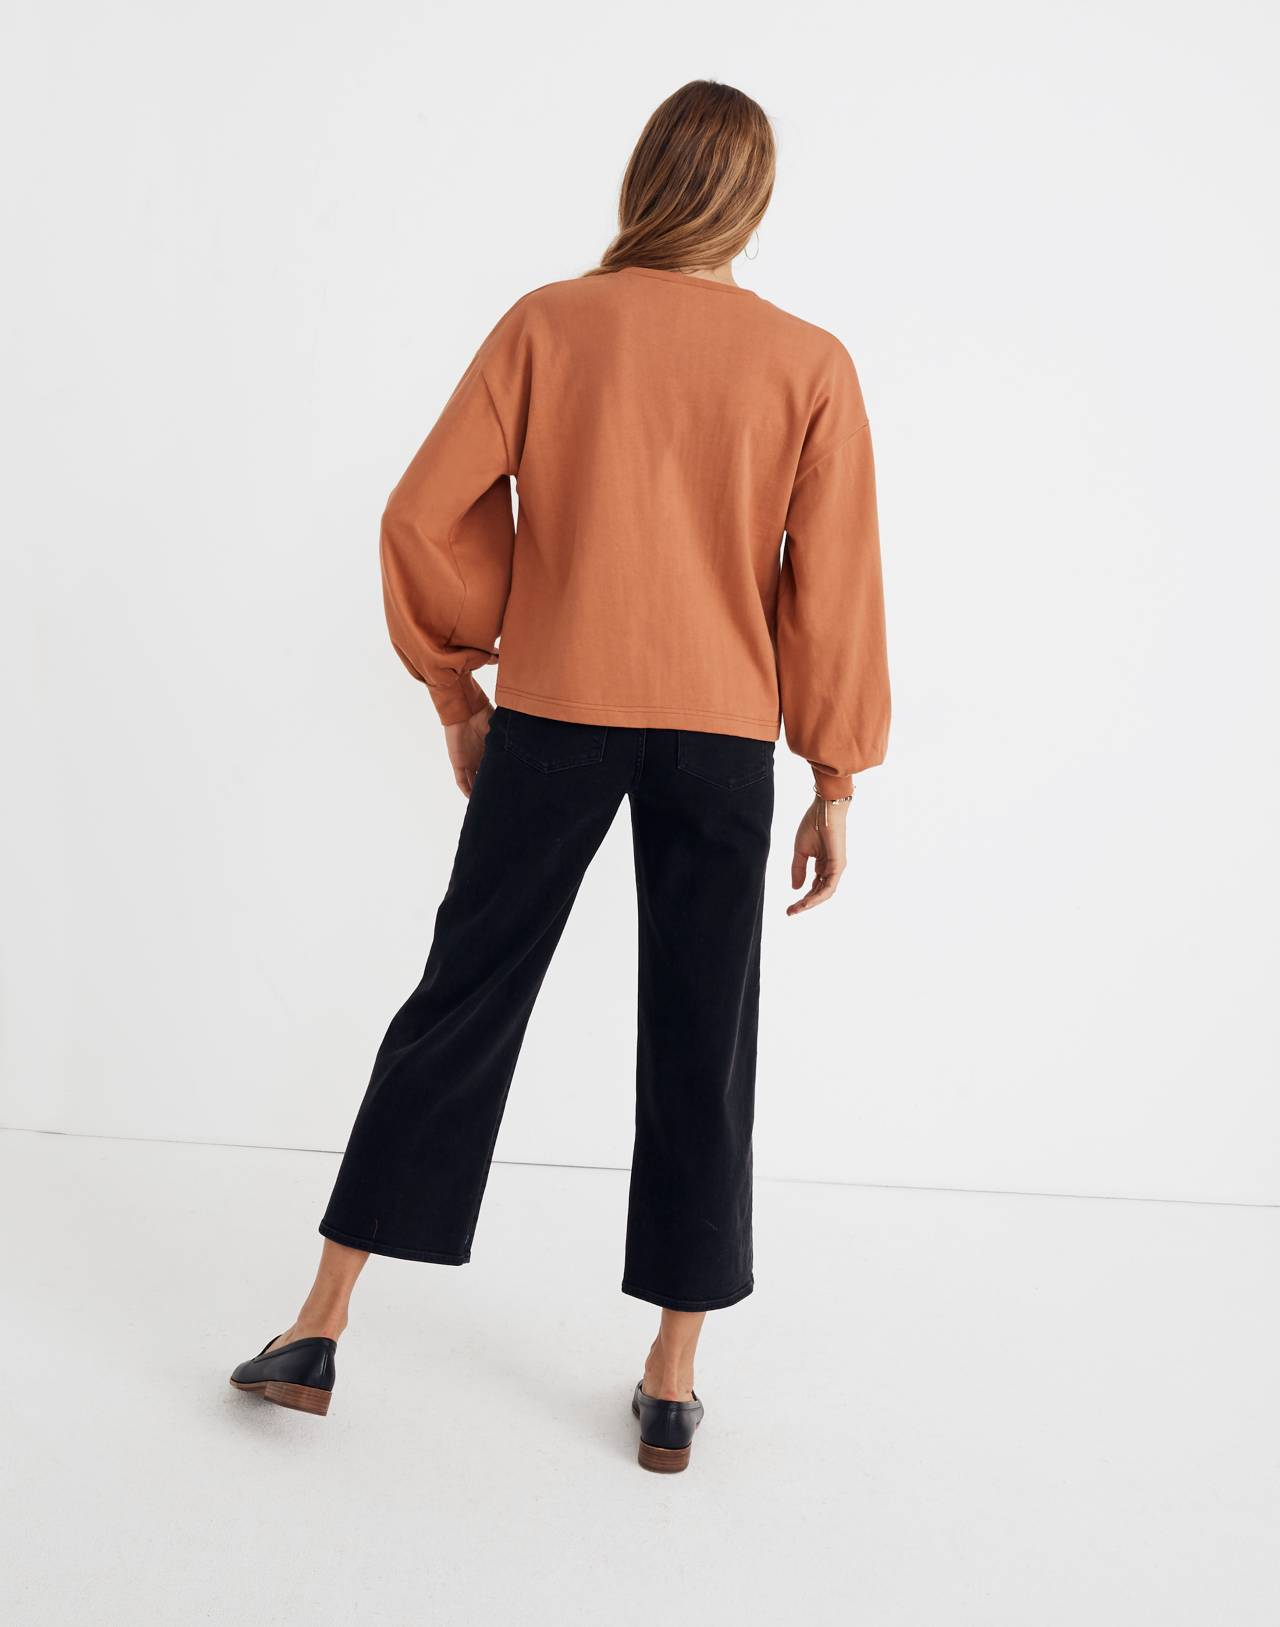 Chord Bubble-Sleeve Top in afterglow red image 3